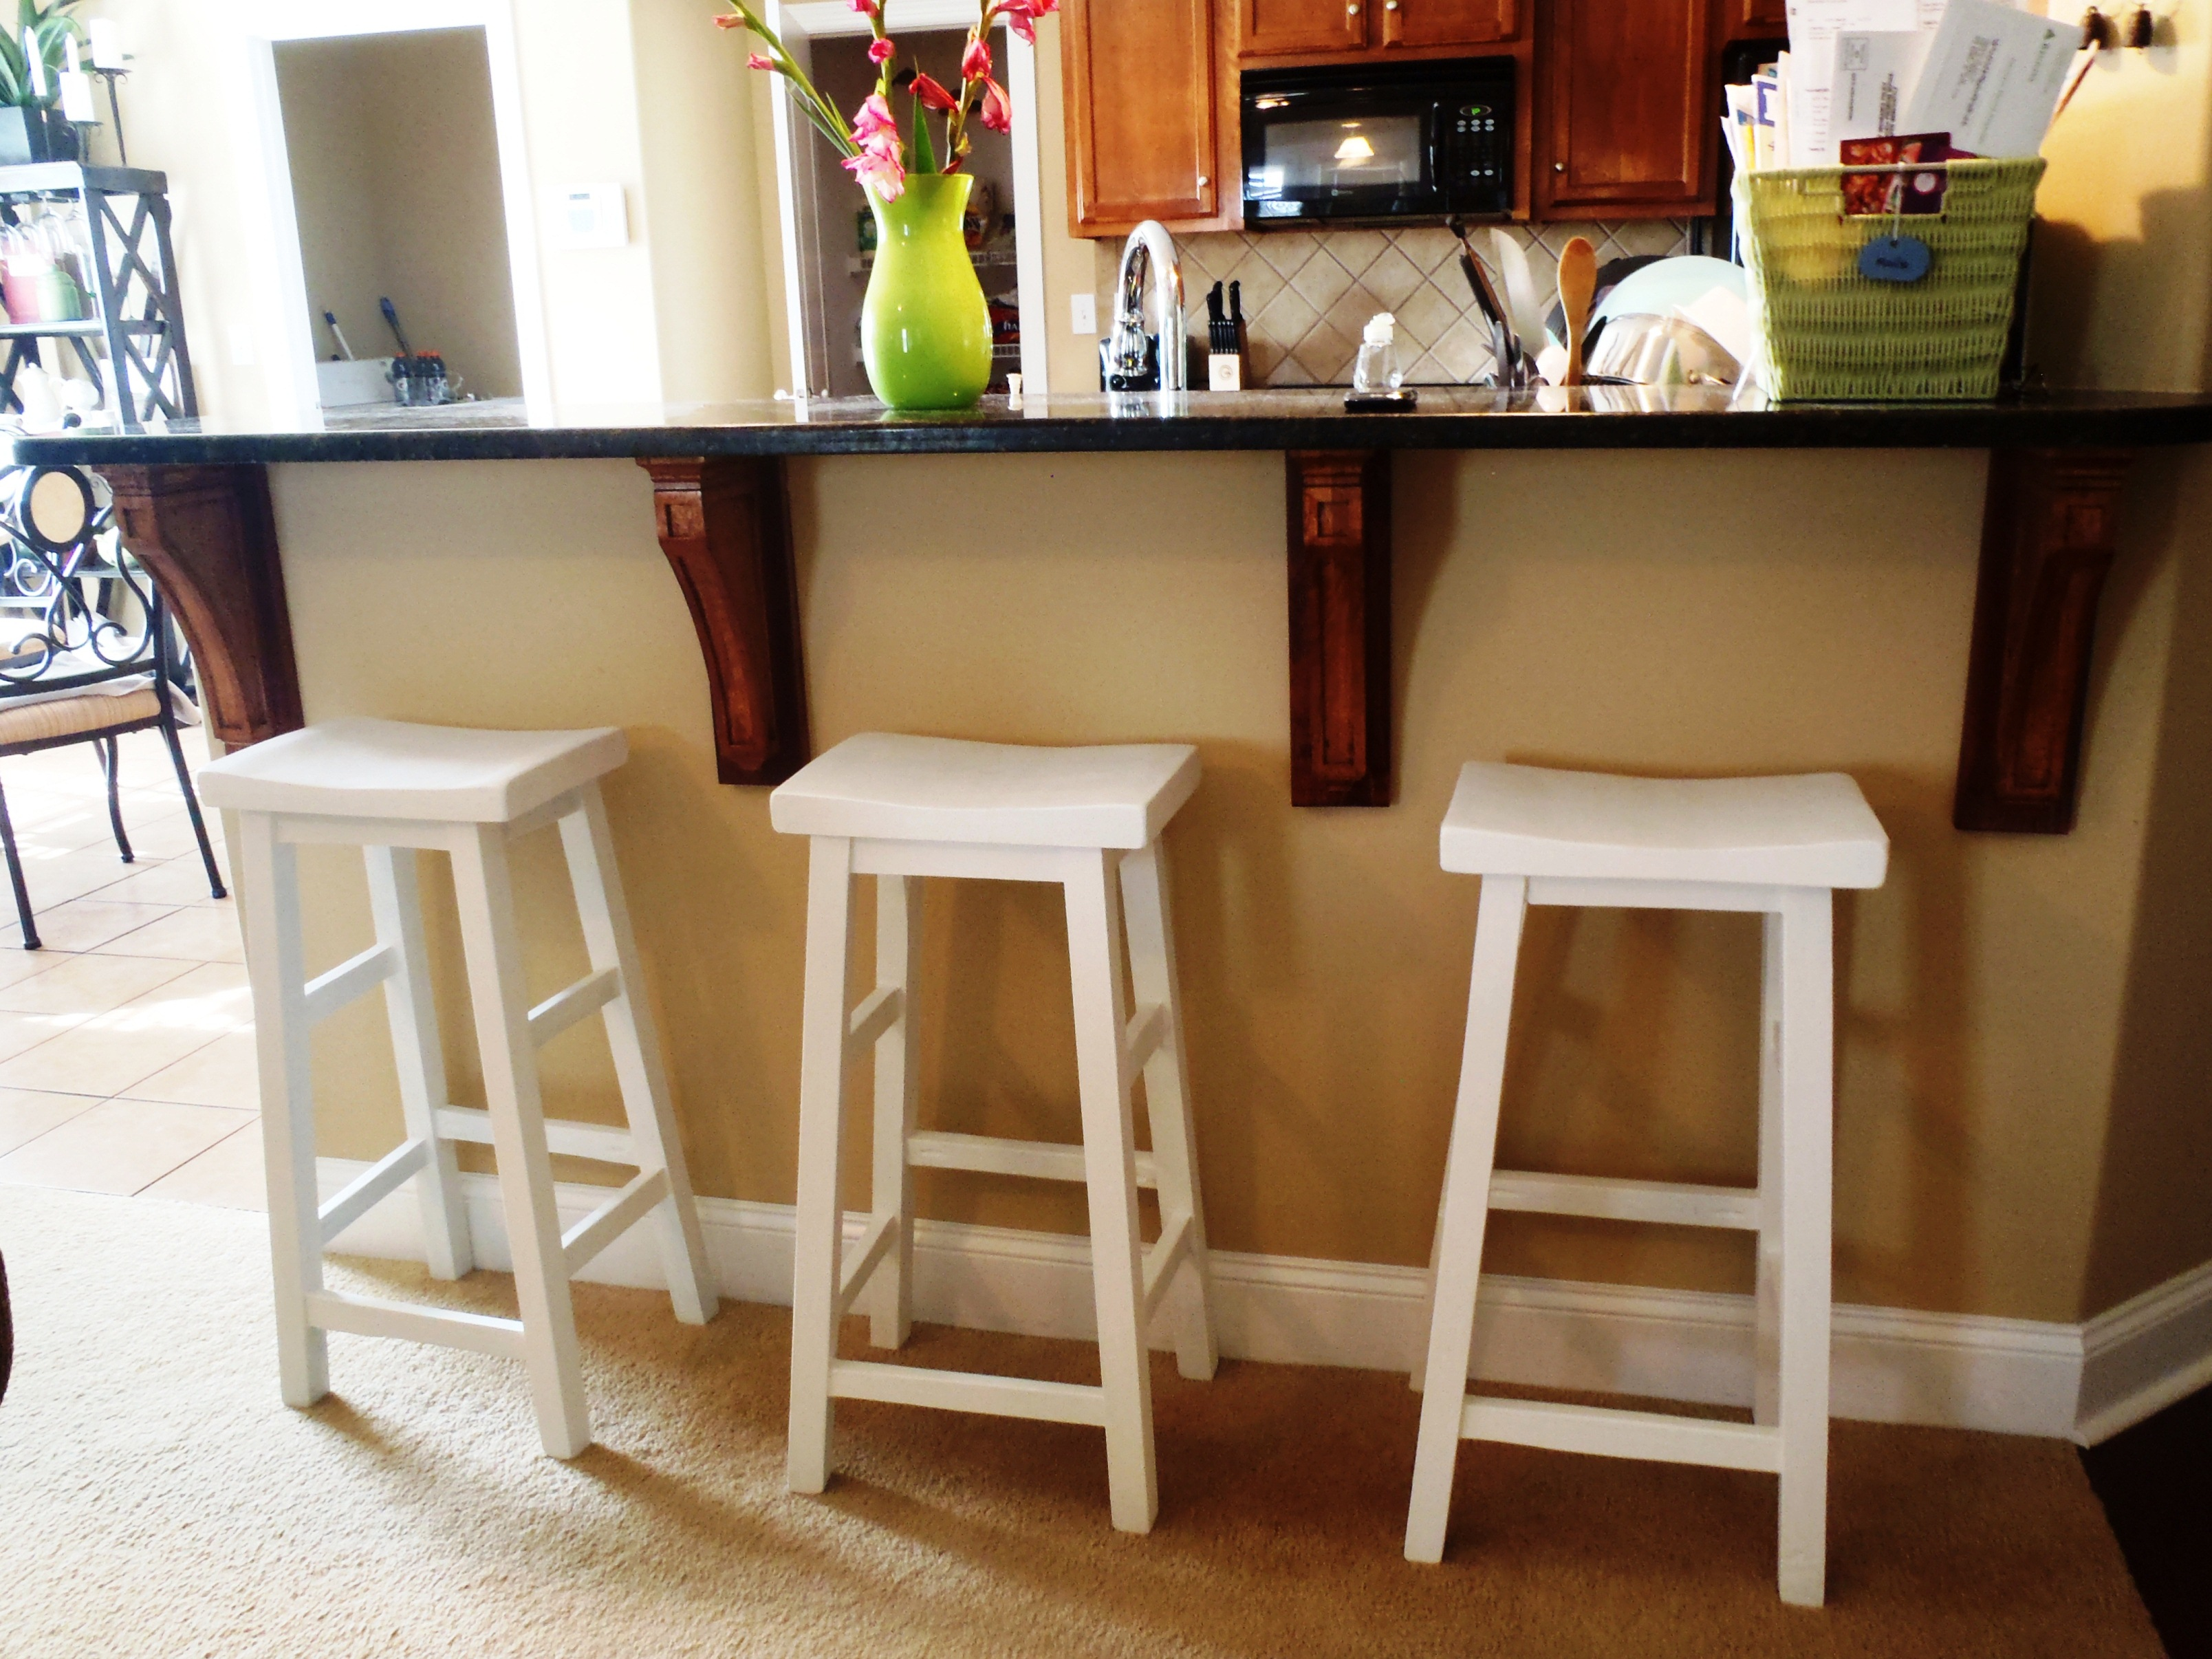 Ana white barstools diy projects barstools solutioingenieria Image collections